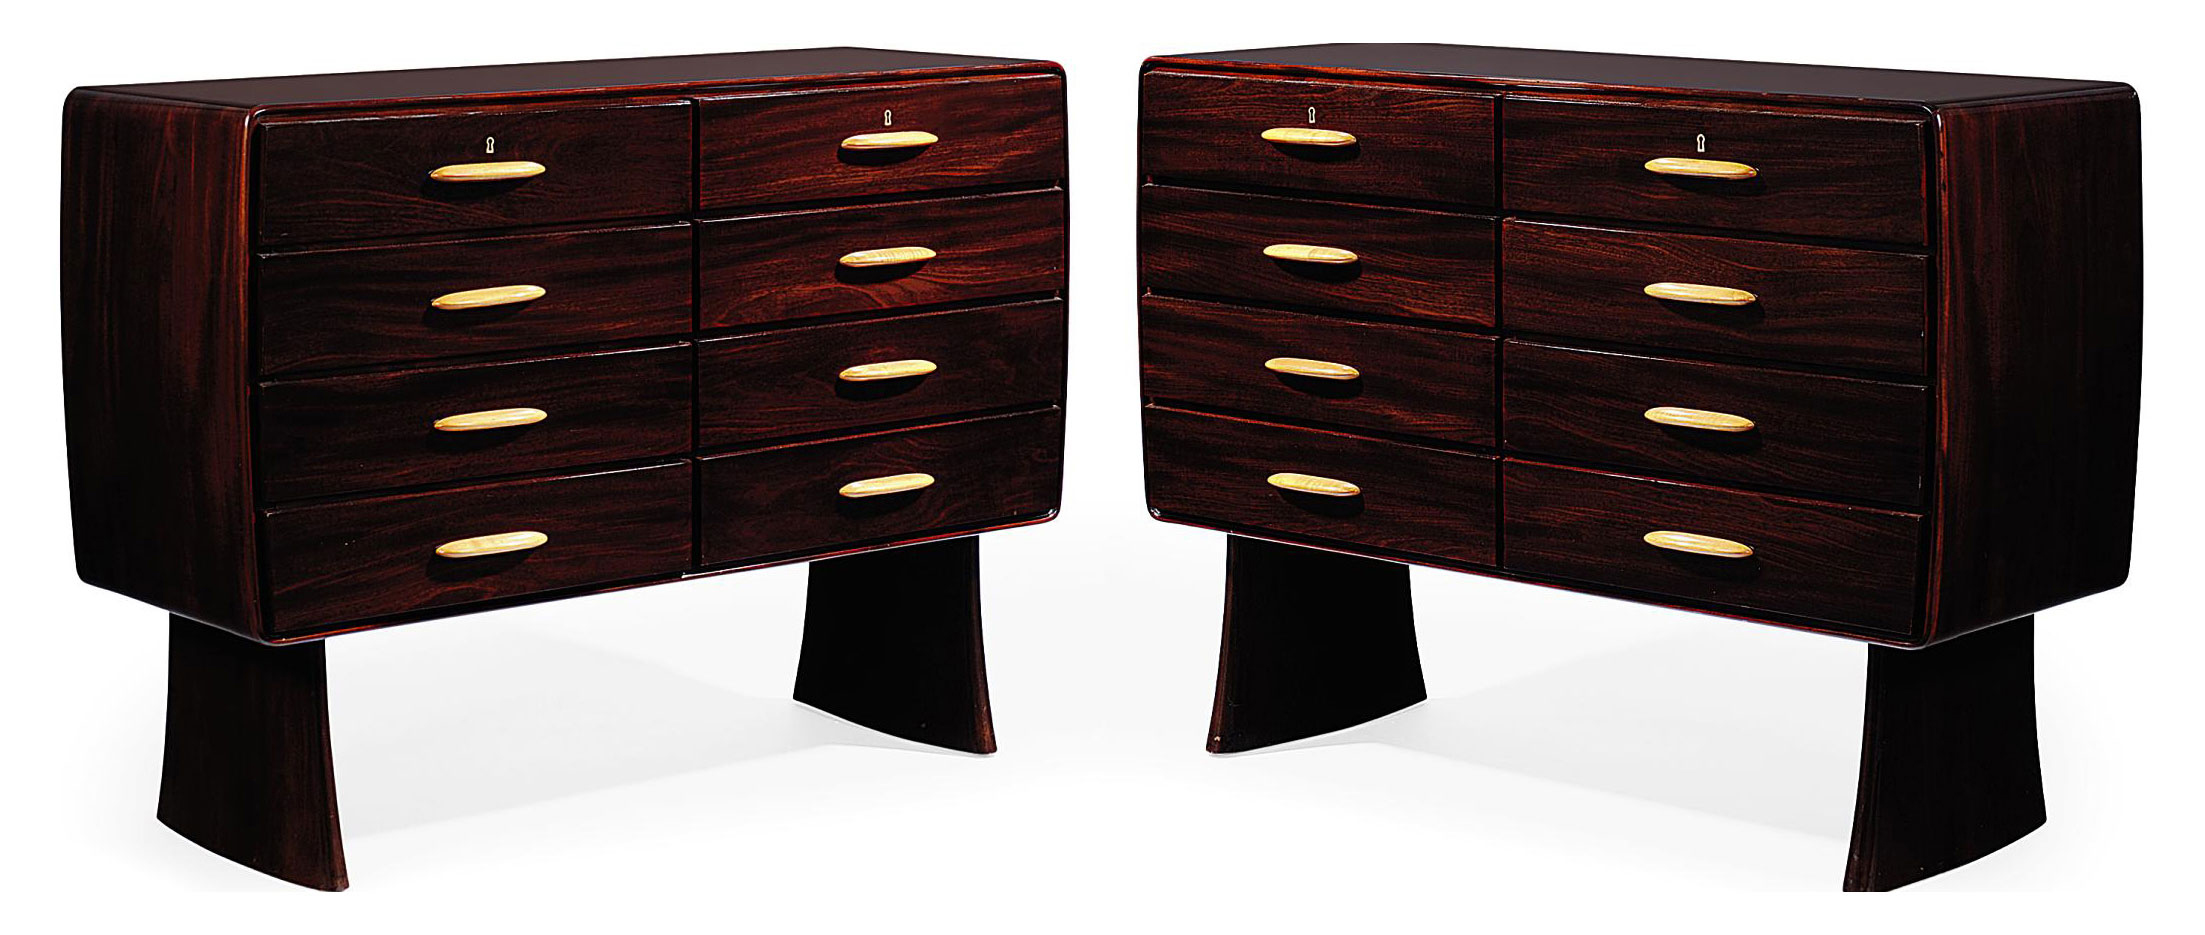 A ULRICH GUGLIELMO PAIR OF COMMODES